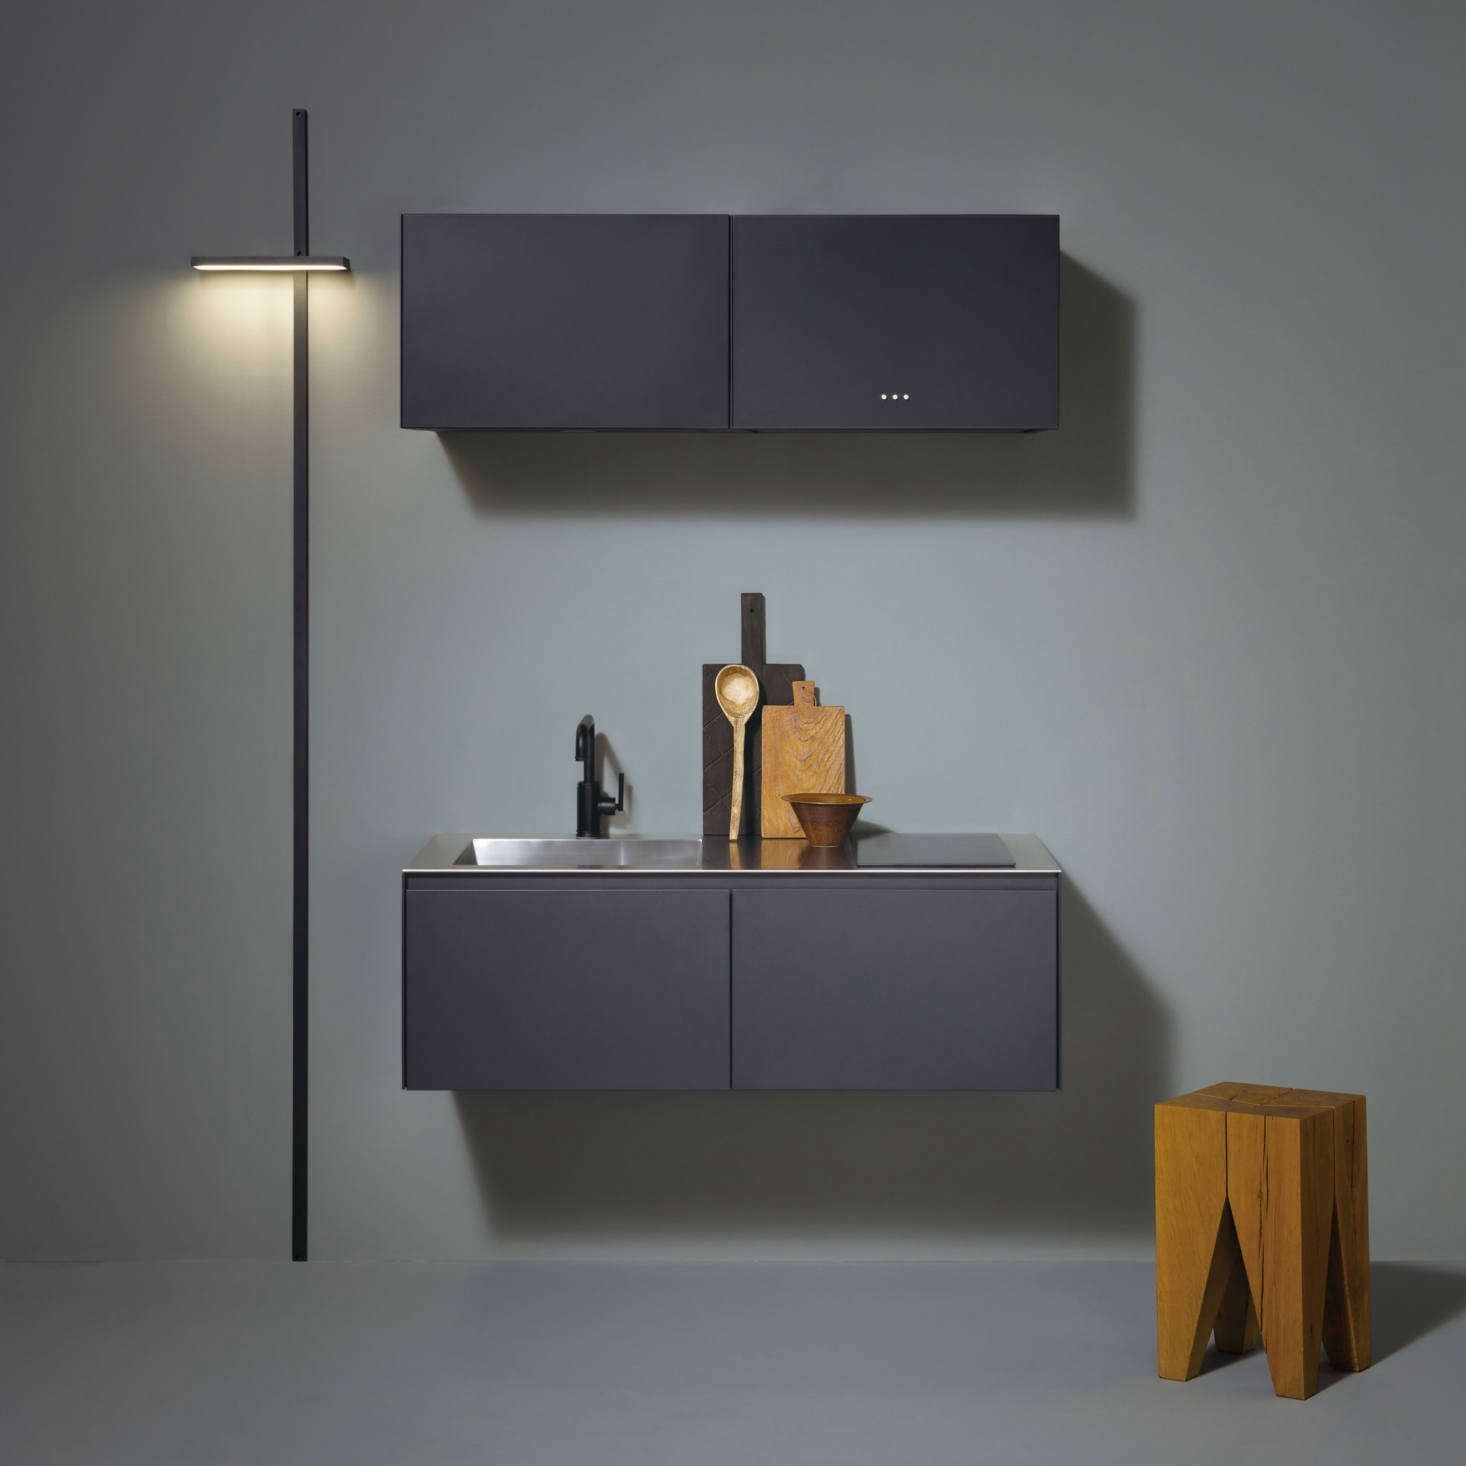 And, a complete kitchen that mounts on the wall: the SC0src=